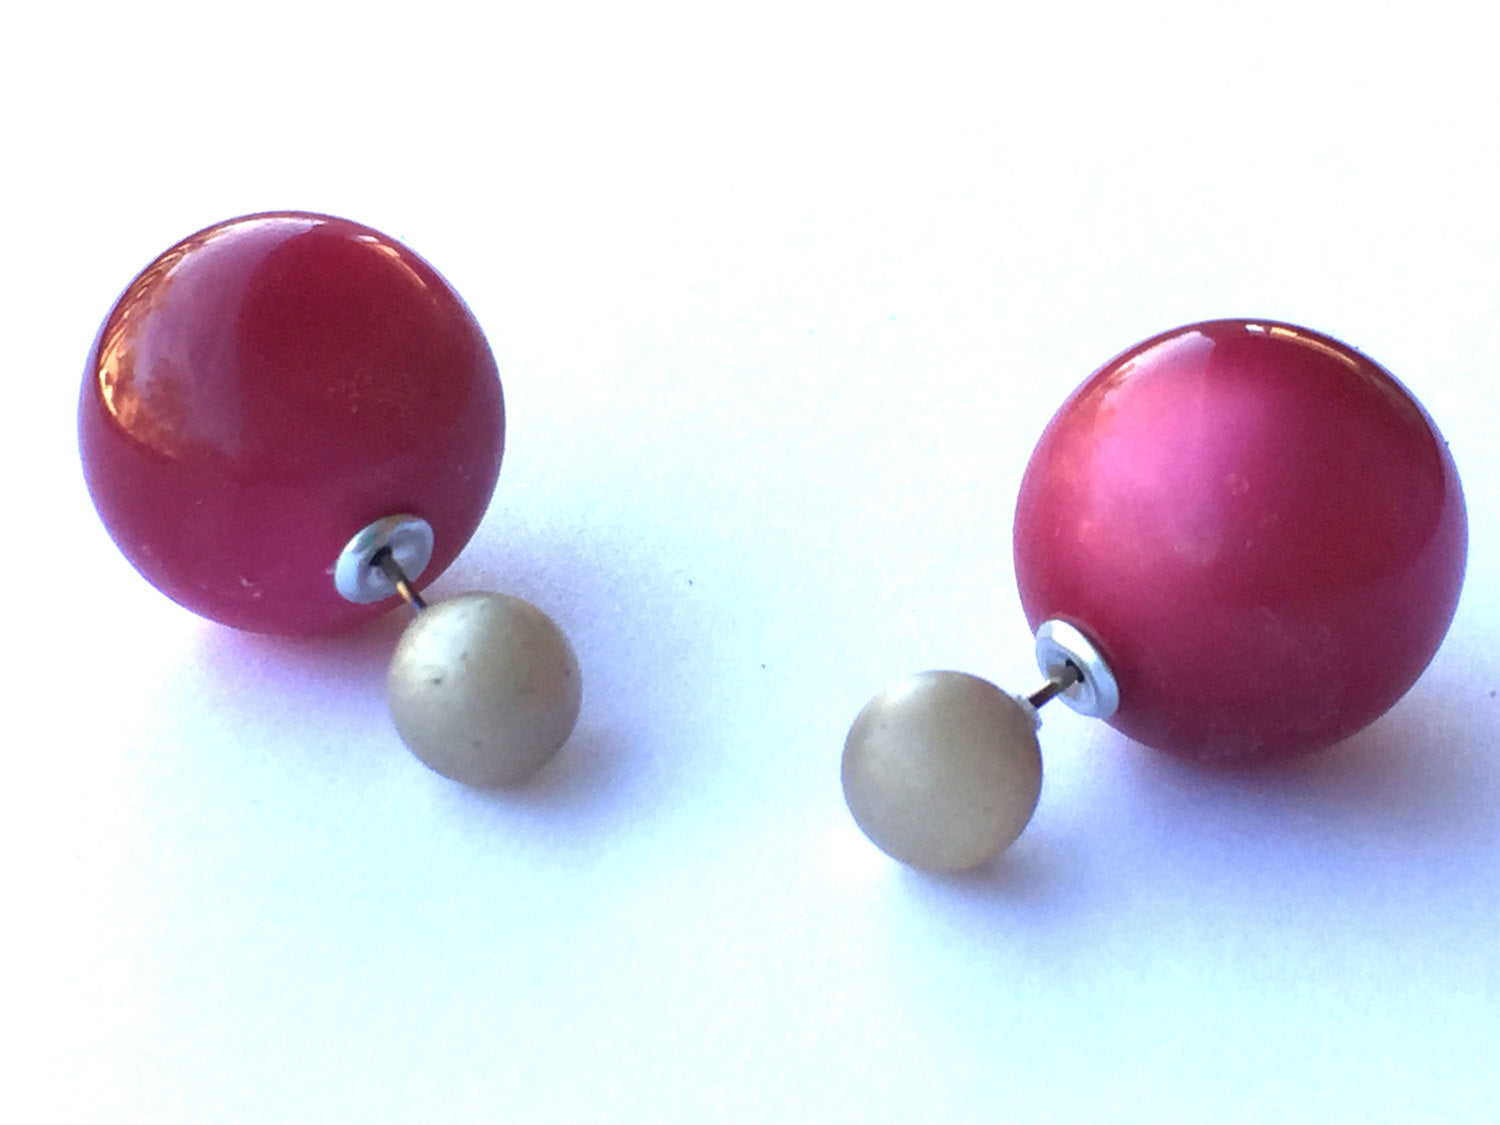 2 Sided Earrings - vintage lucite double moonglow studs - Grey Frosted with Cranberry Red